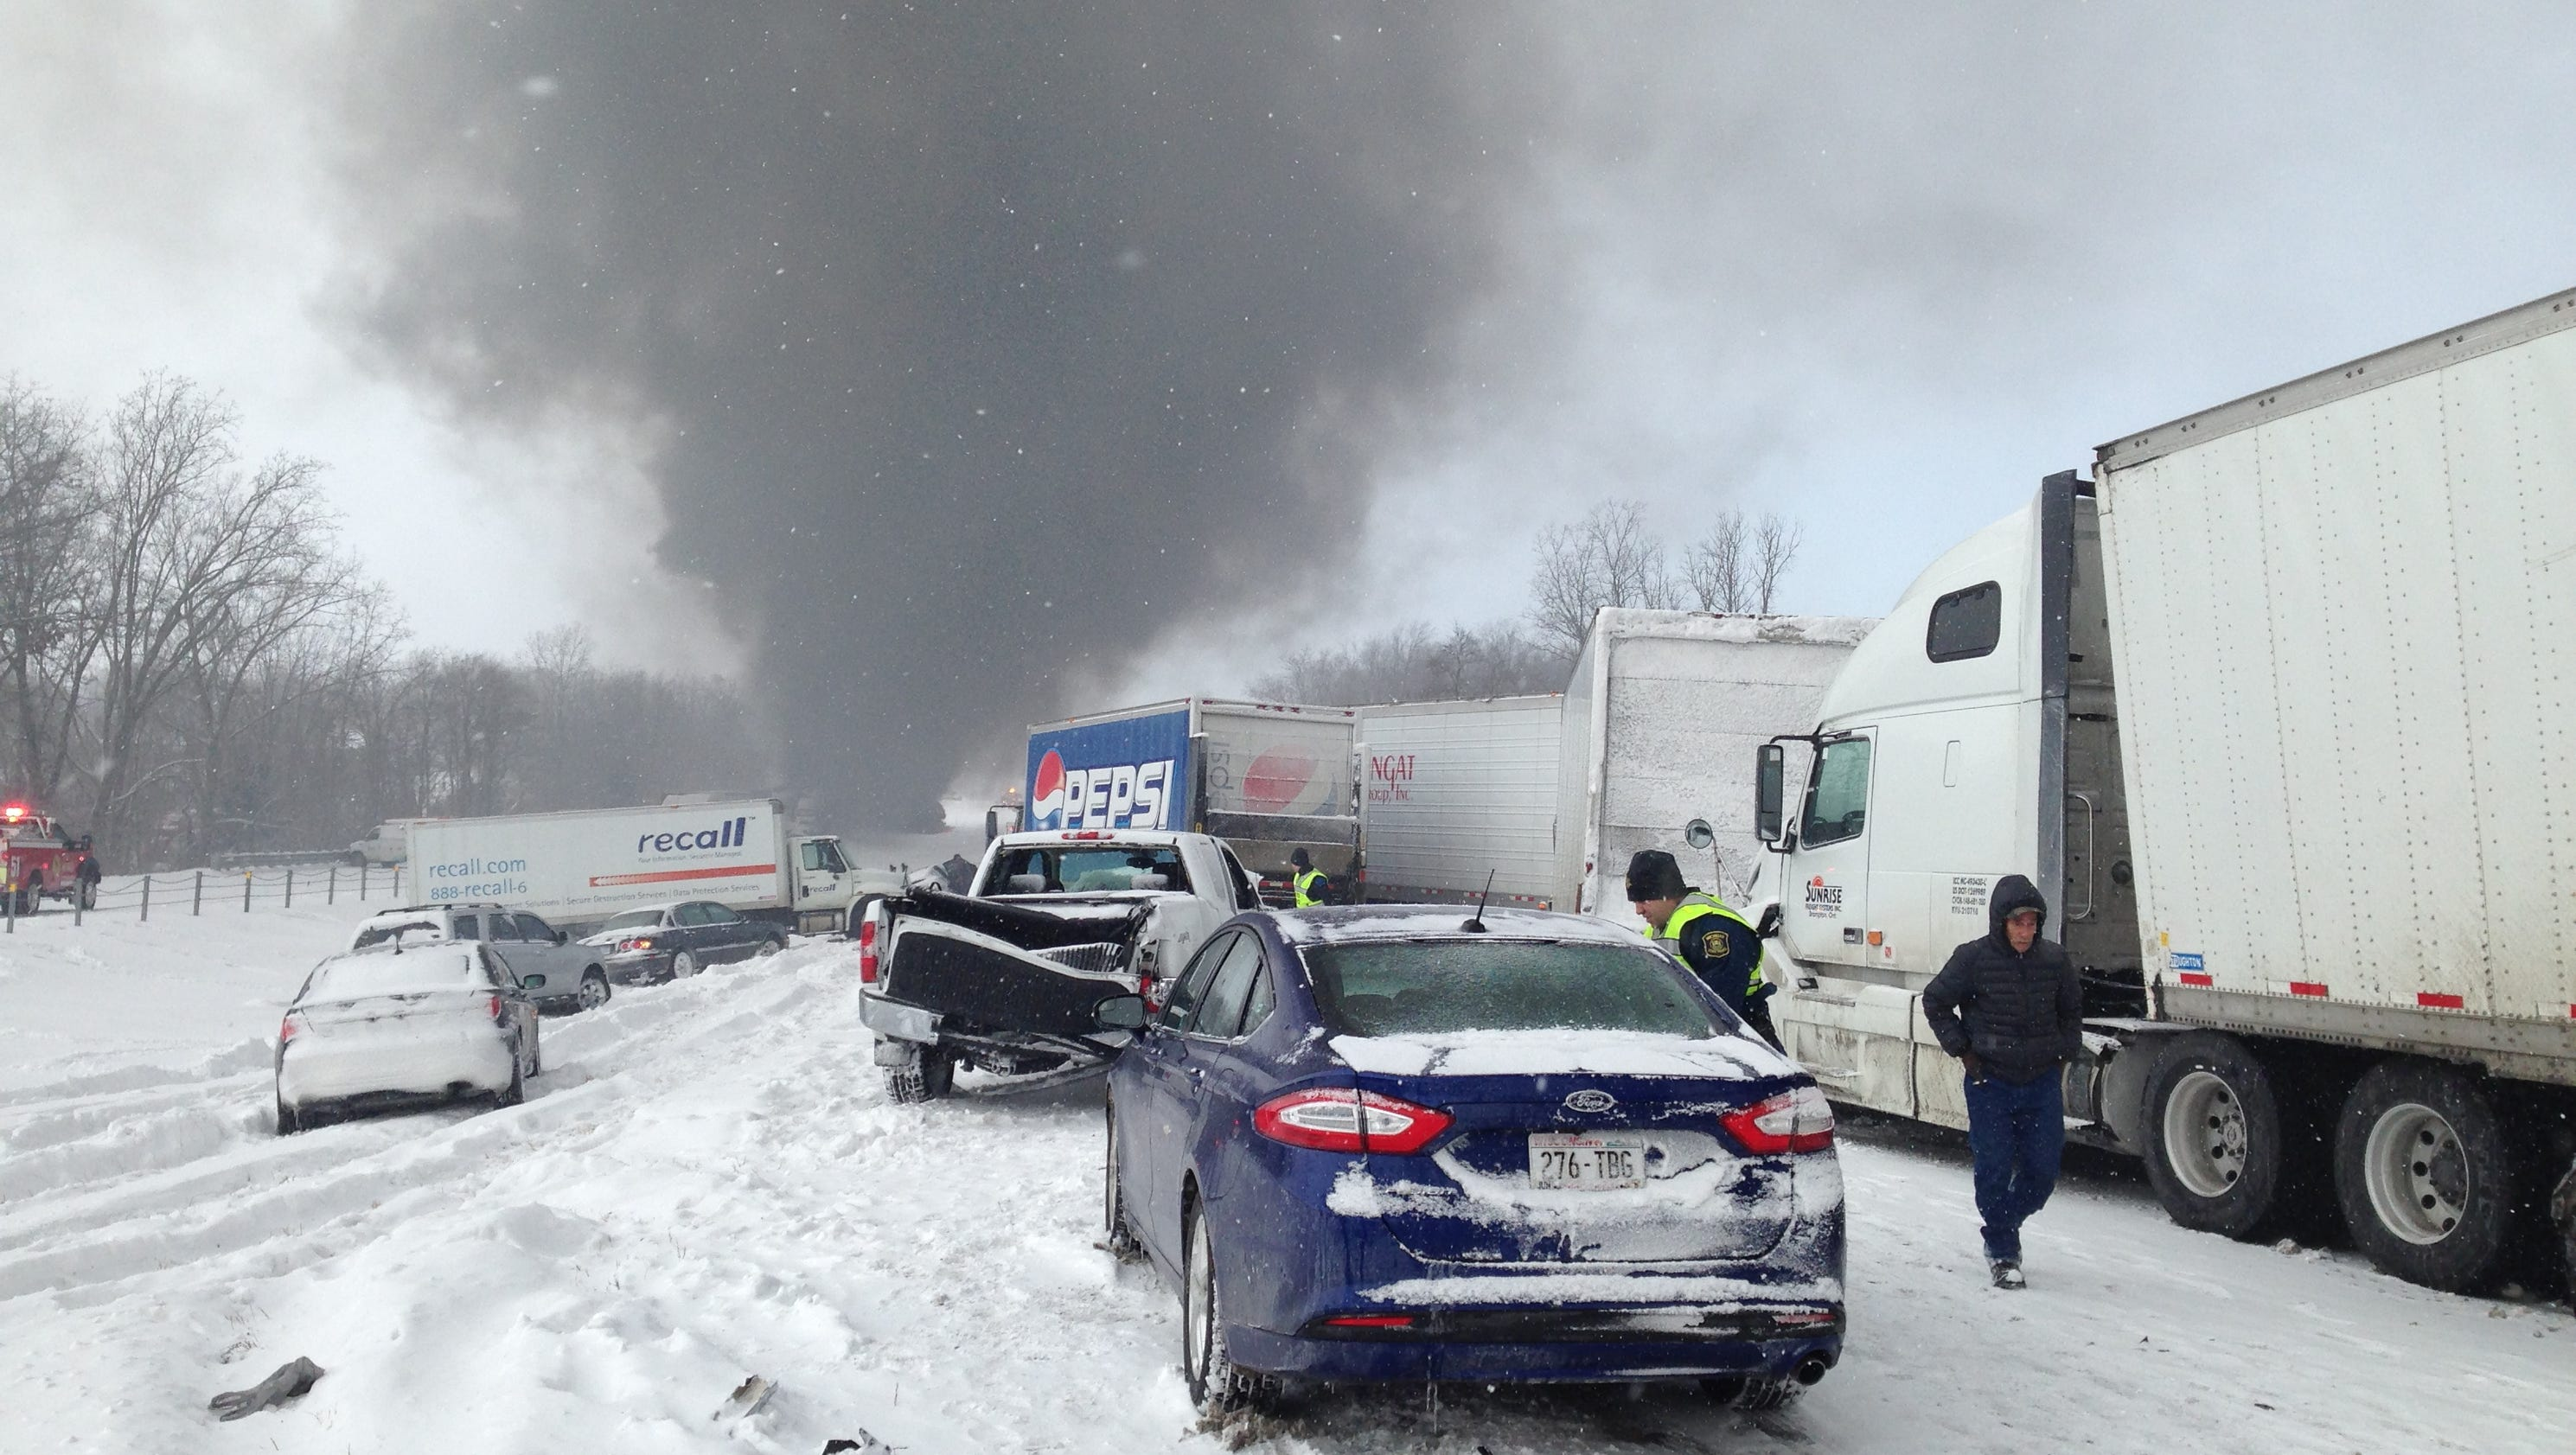 Michigan Car Pile Up Accident